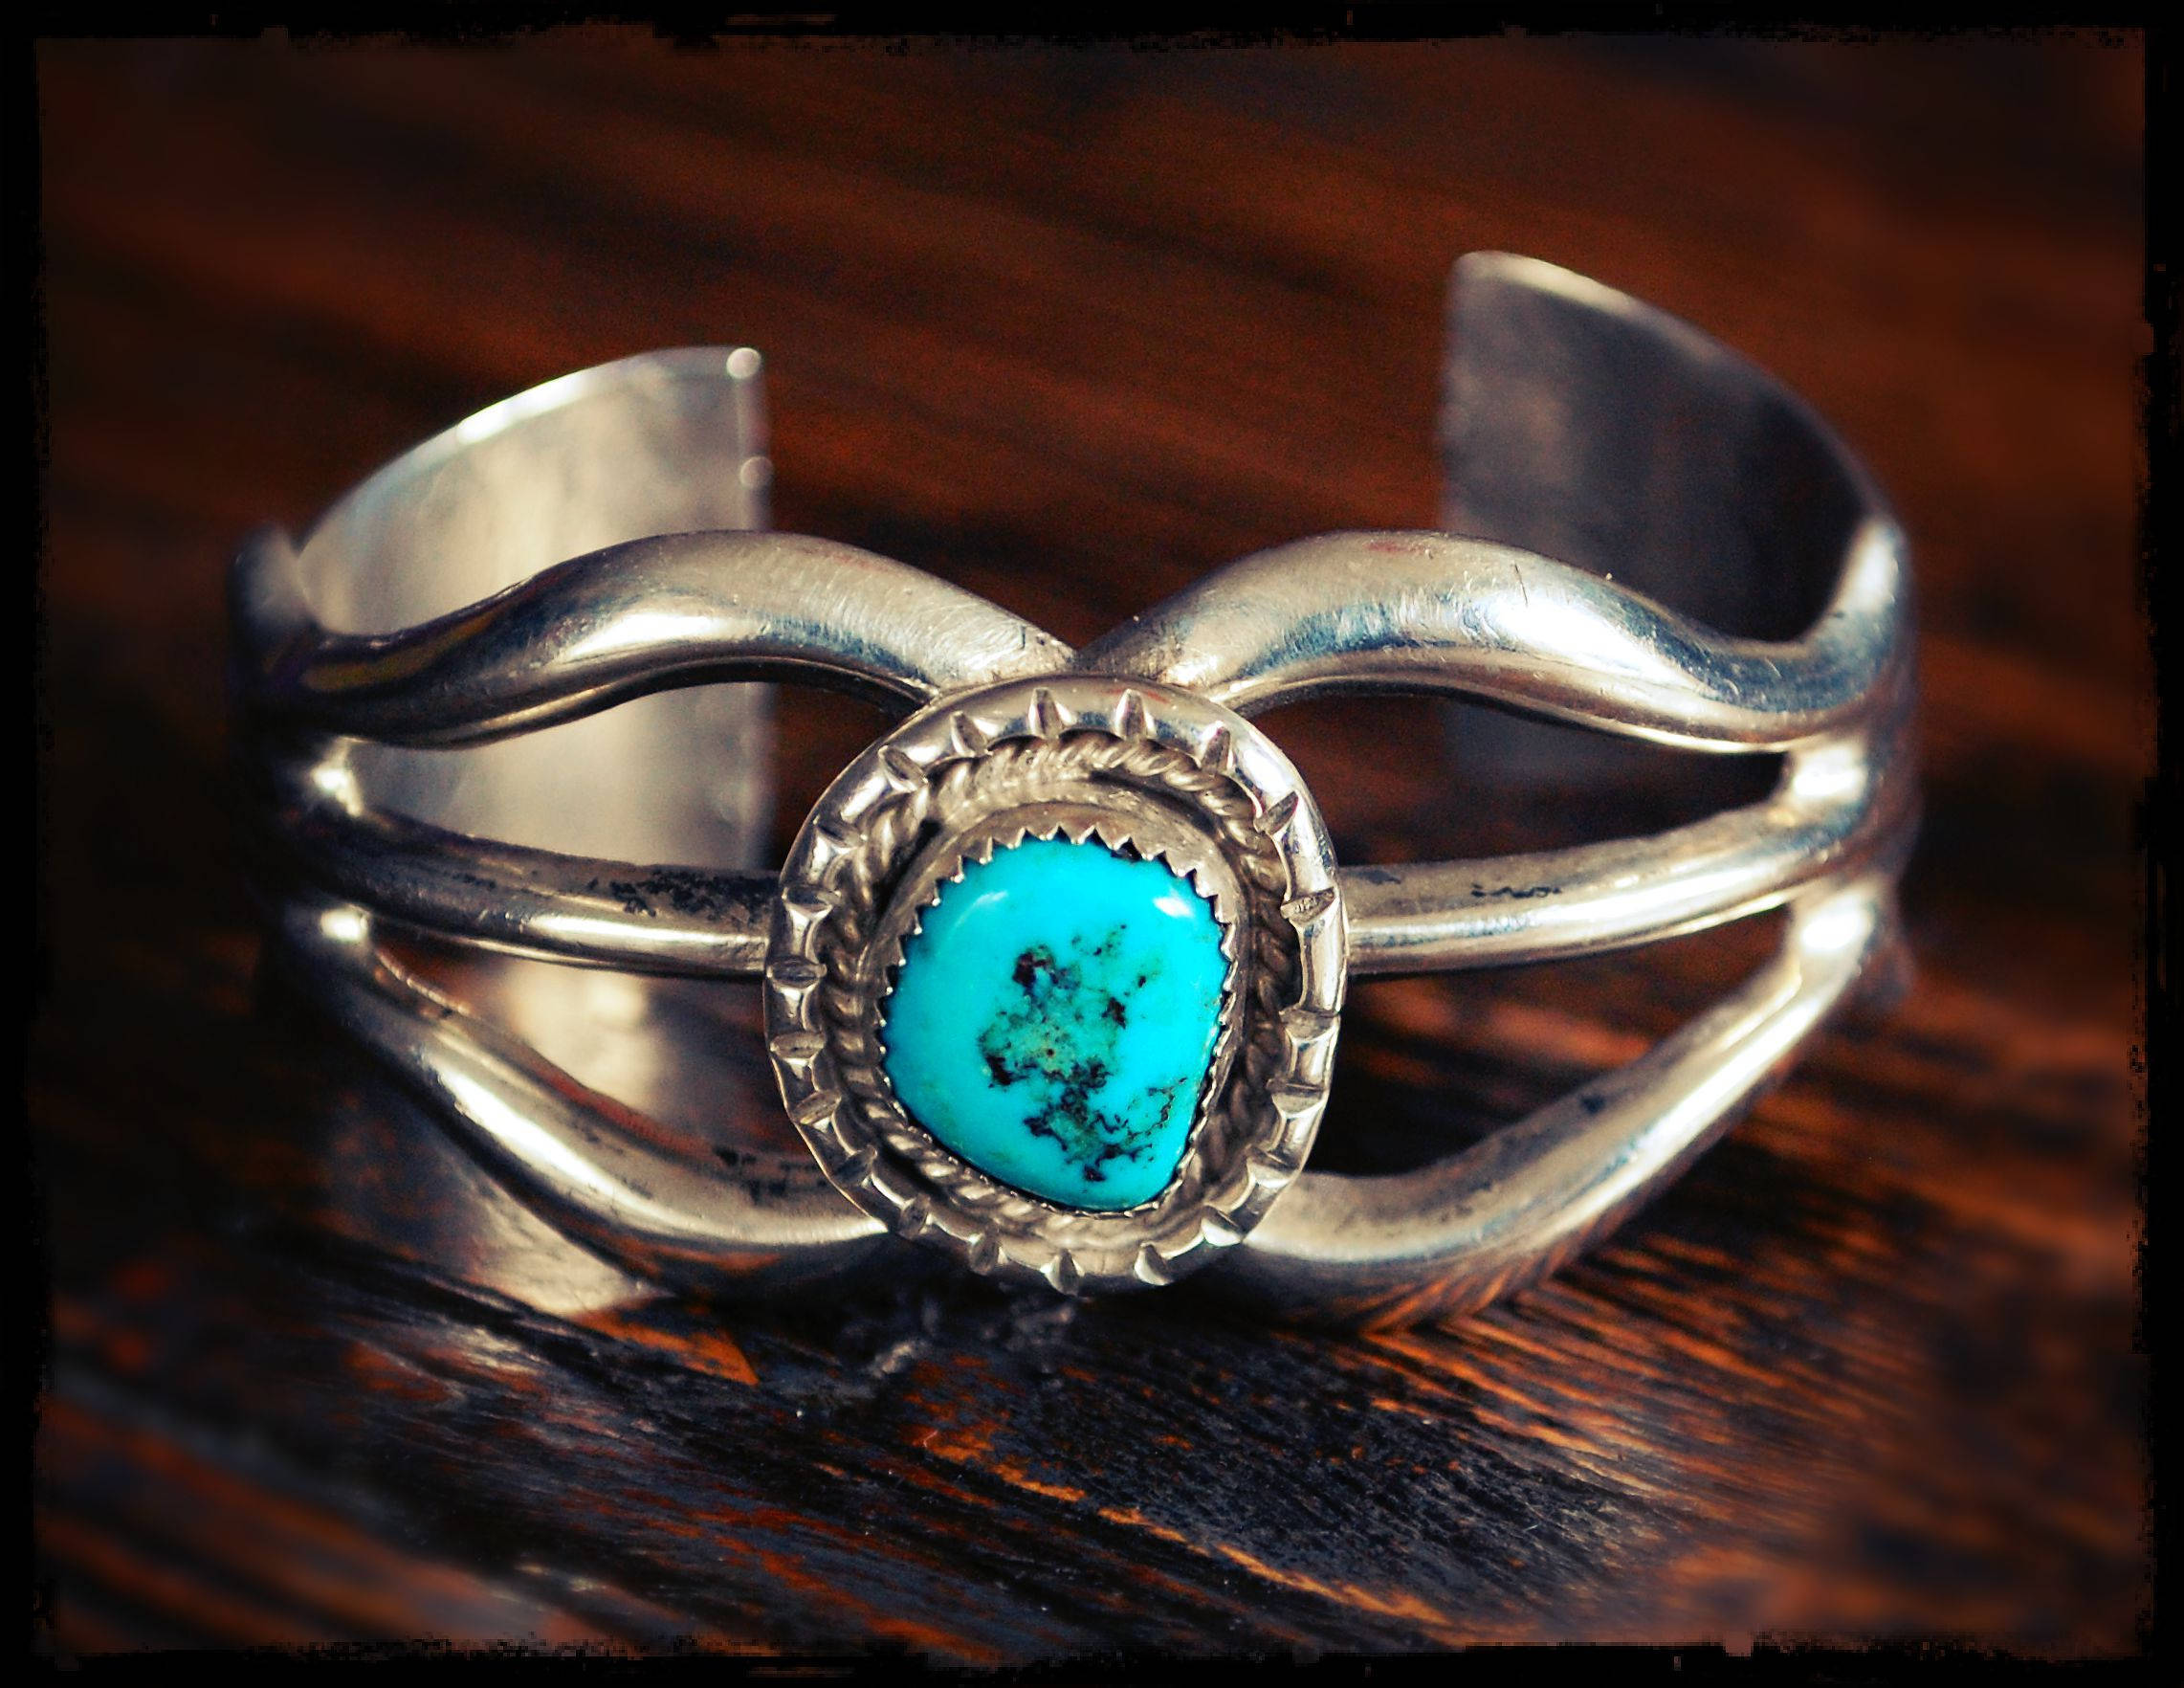 Navajo Native American Turquoise Sandcast Cuff Bracelet - Small